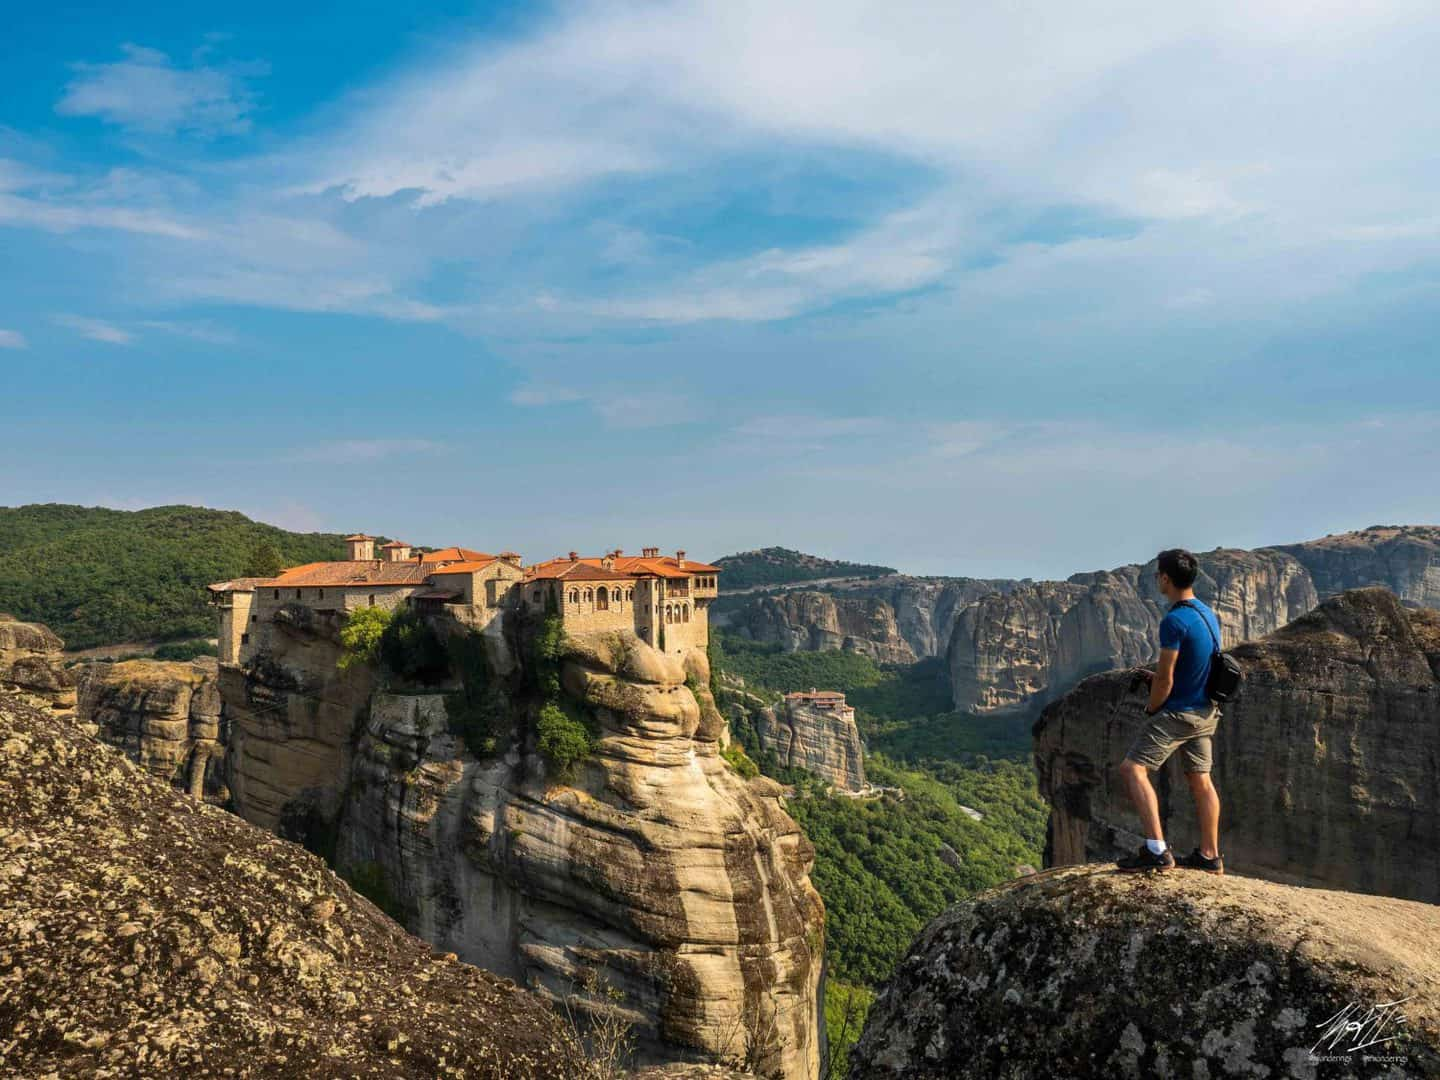 Monastery of Varlaam is the second largest monastery in Meteora, with the Monastery of Rousanou behind it.